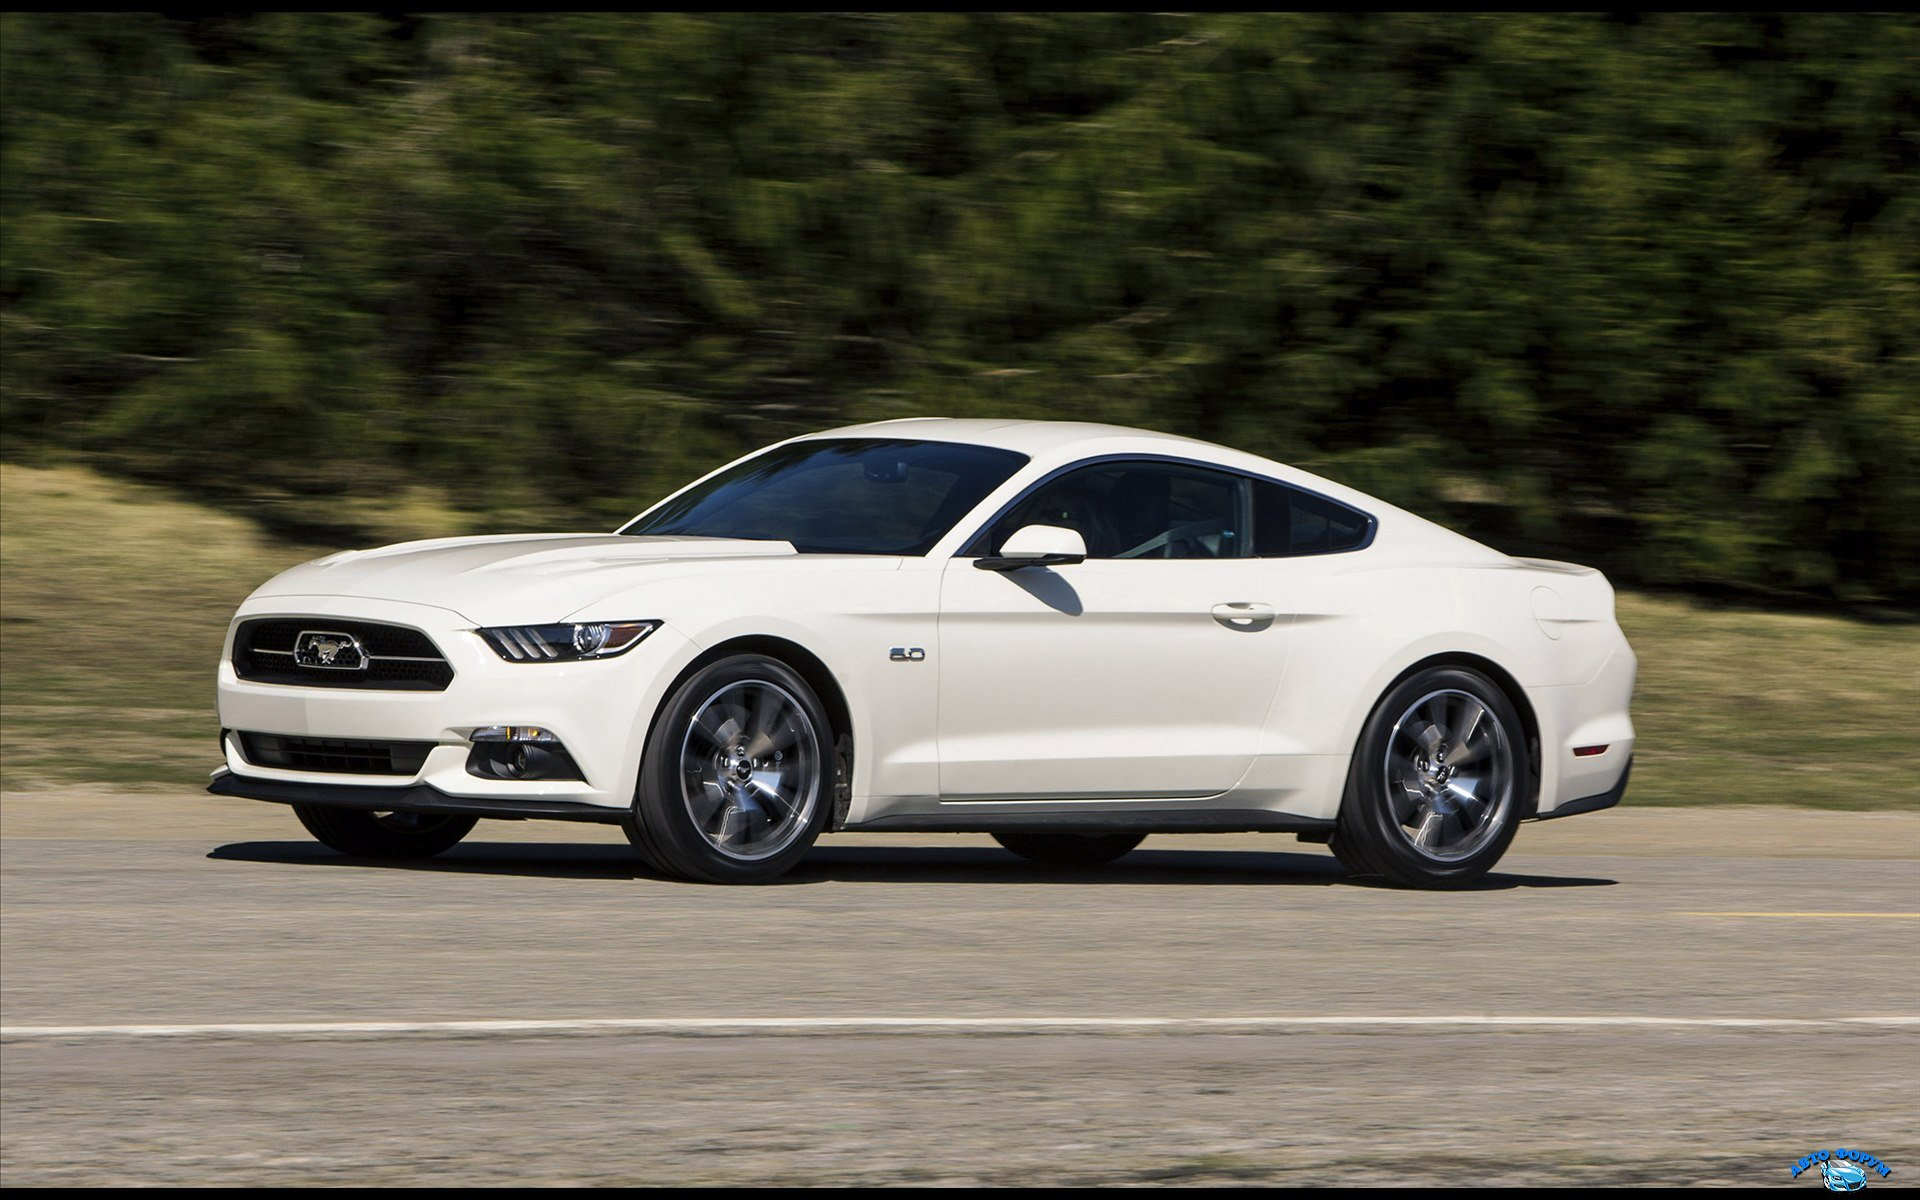 Ford-Mustang-50-Year-Limited-Edition-2015-widescreen-15.jpg